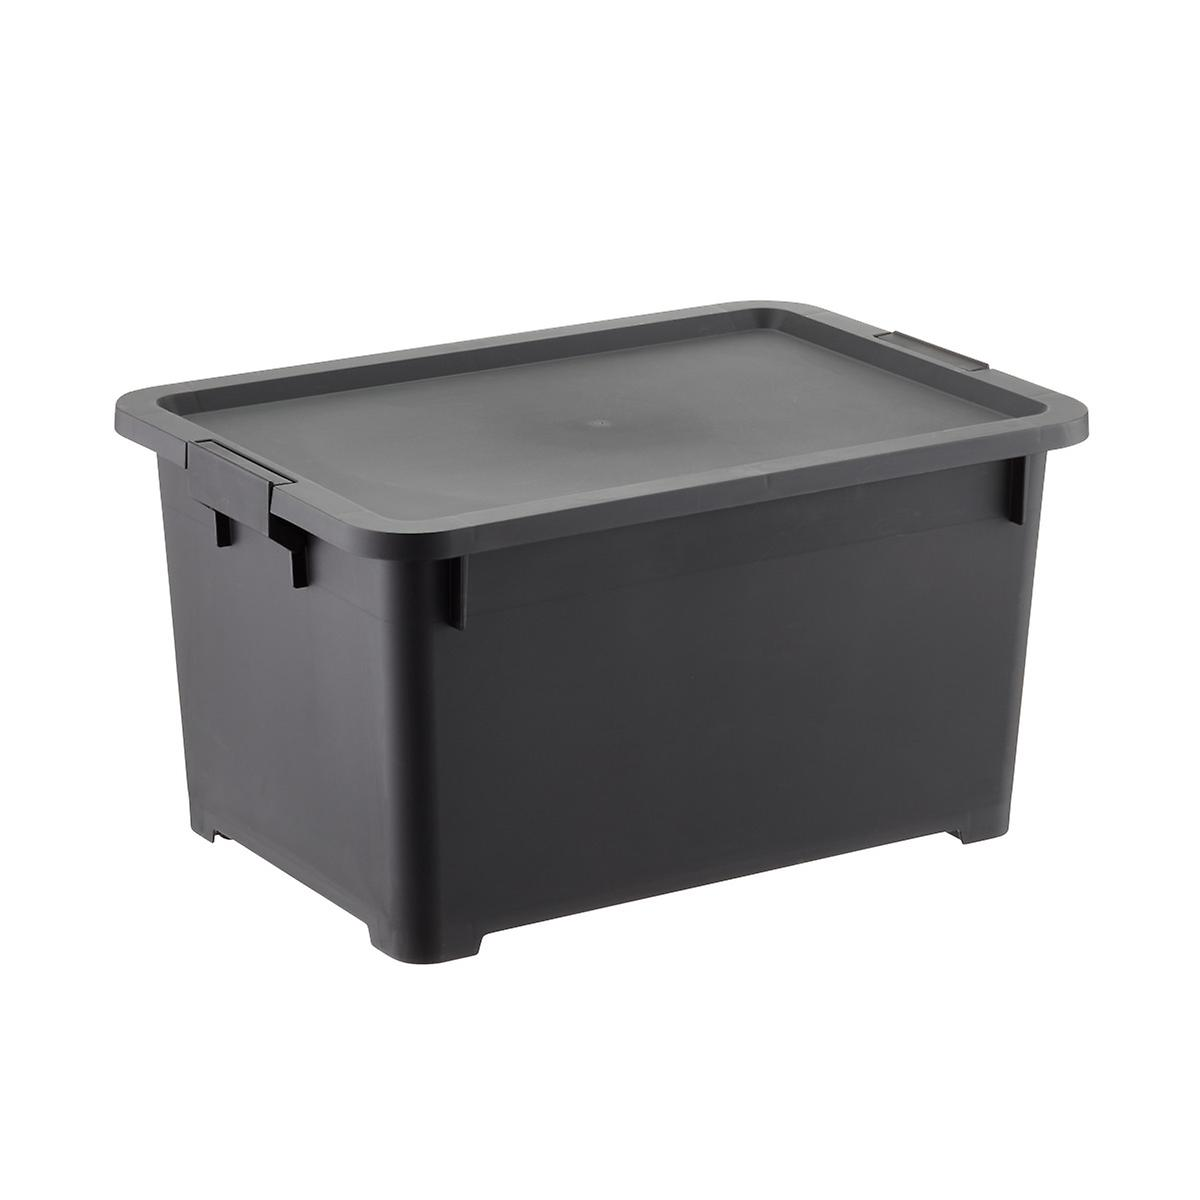 213e5cd1a63425bc additionally How To Build A Wood Fired Hot Tub as well Wooden Outdoor Storage Box At Garden Trading besides Plastic Storage Totes as well 3551290. on rubbermaid tubs